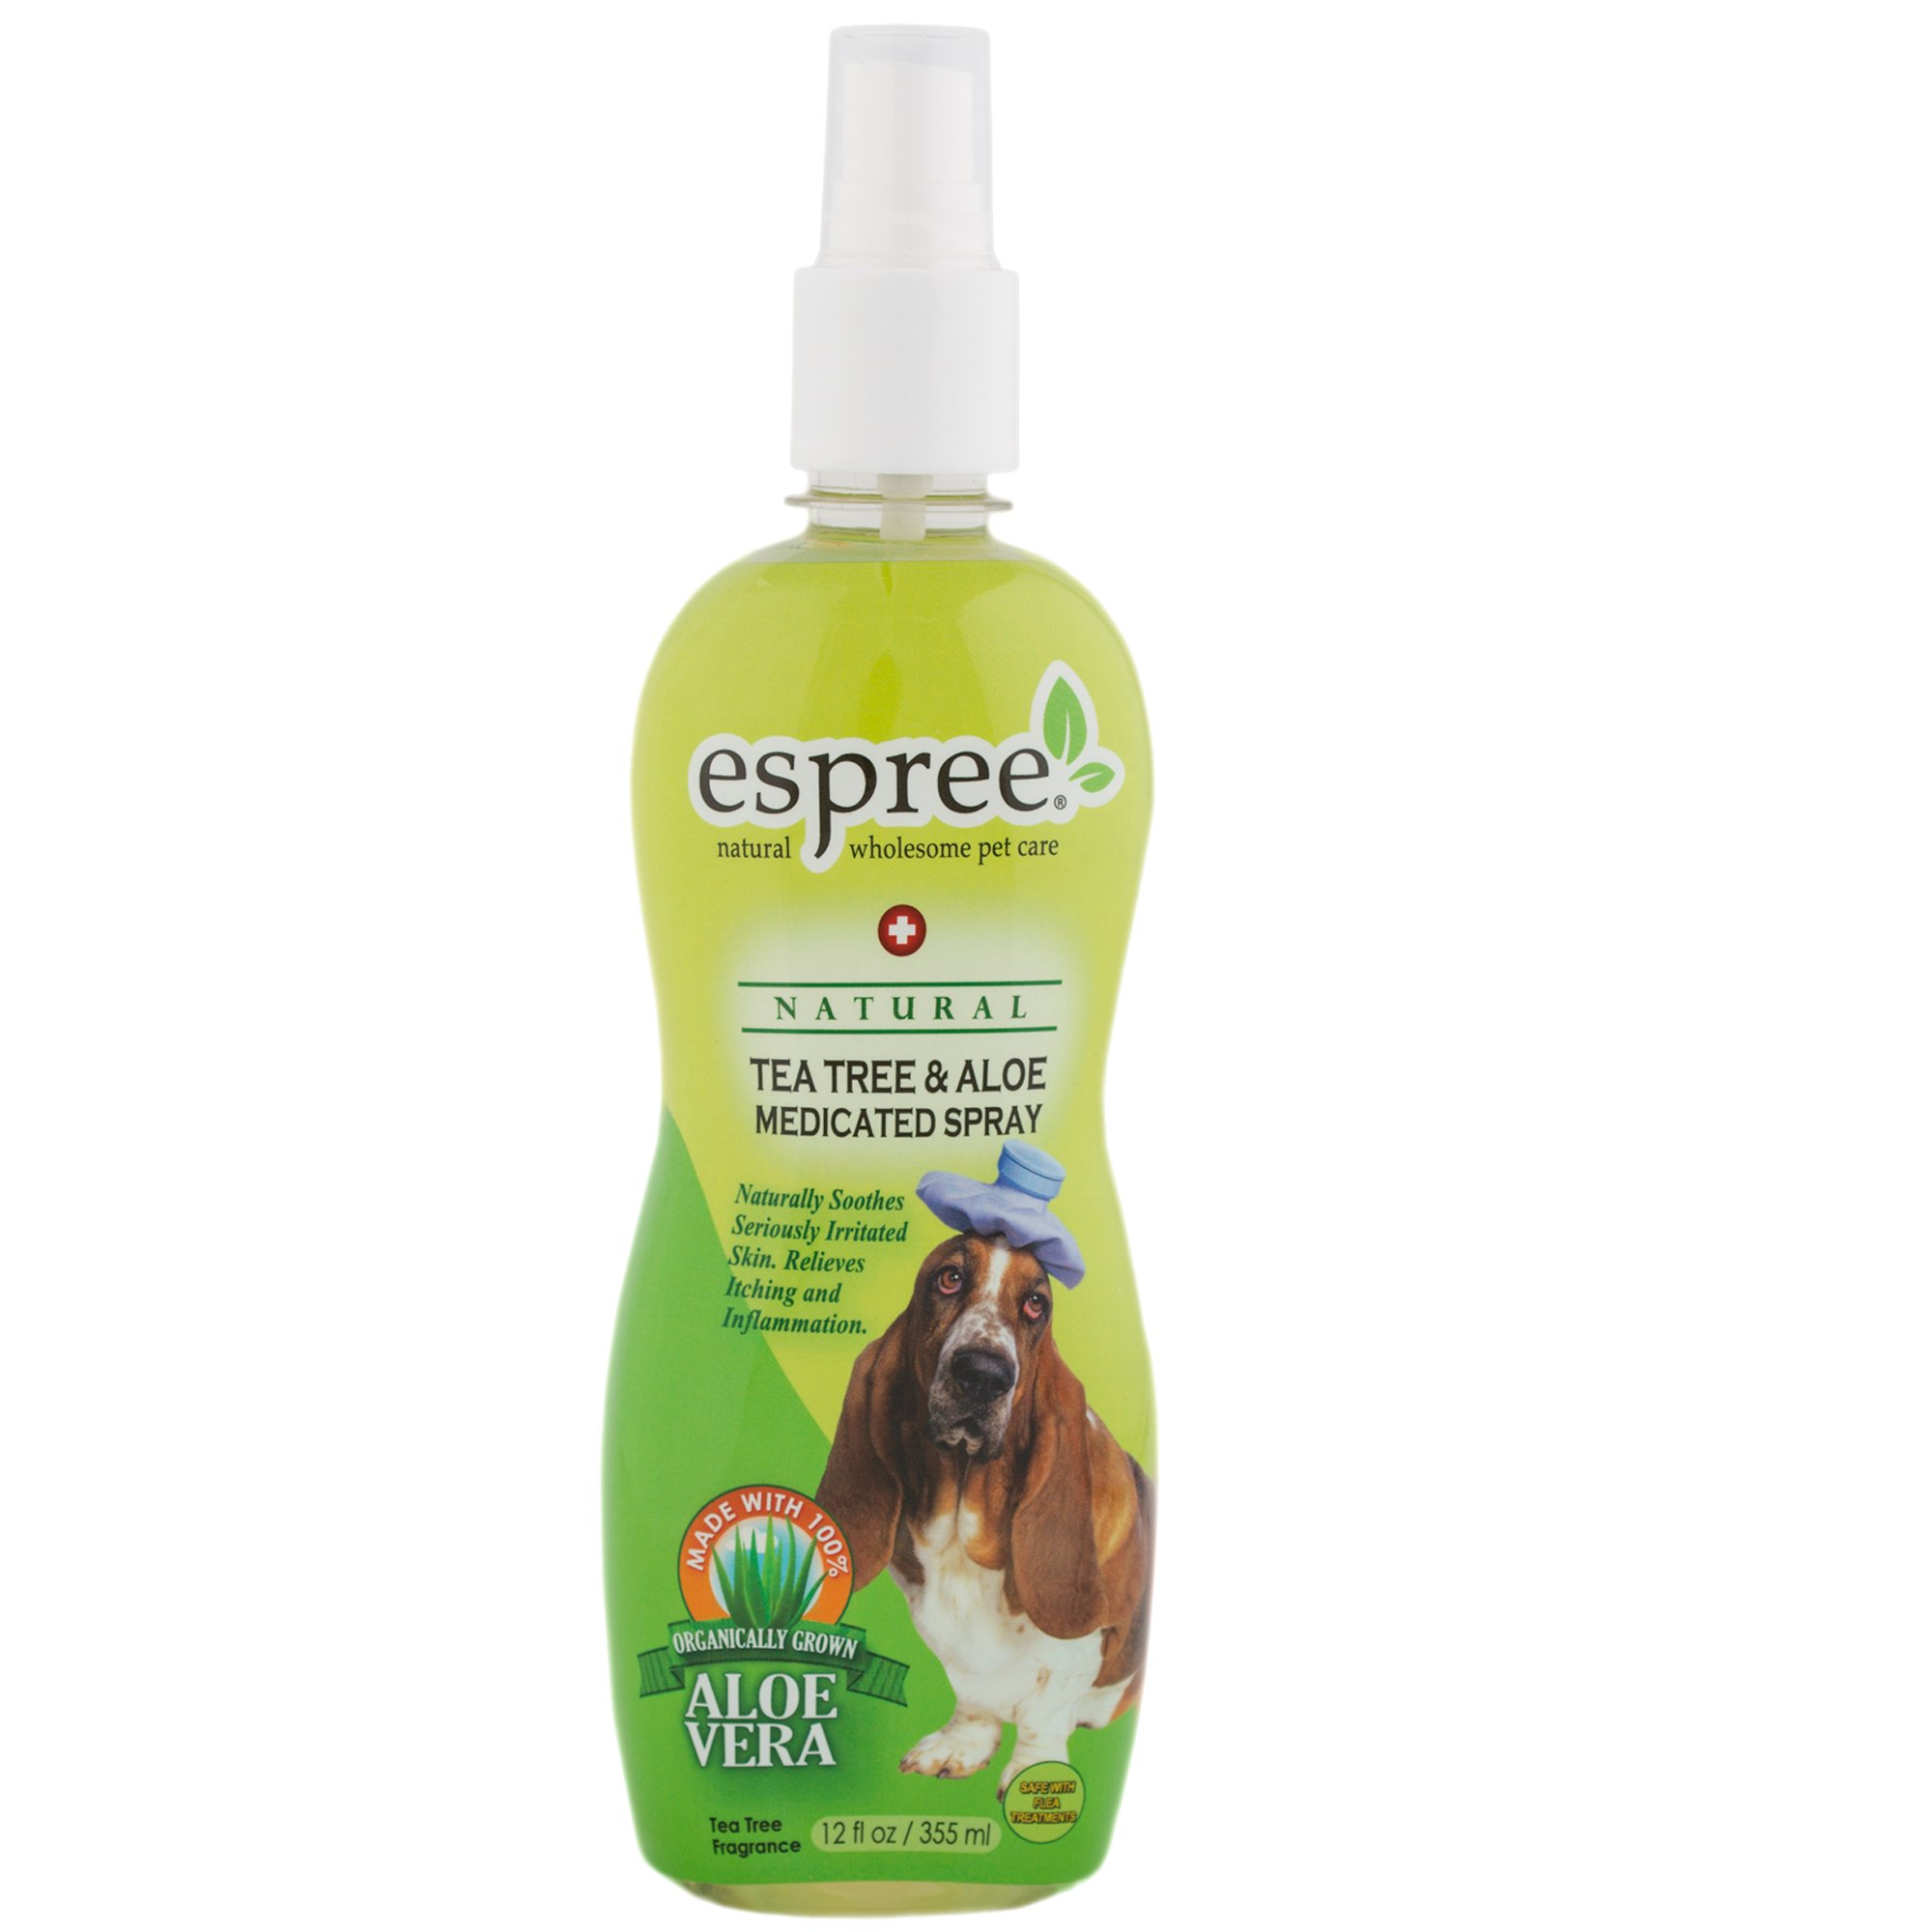 Espree Natural Tea Tree & Aloe Medicated Spray